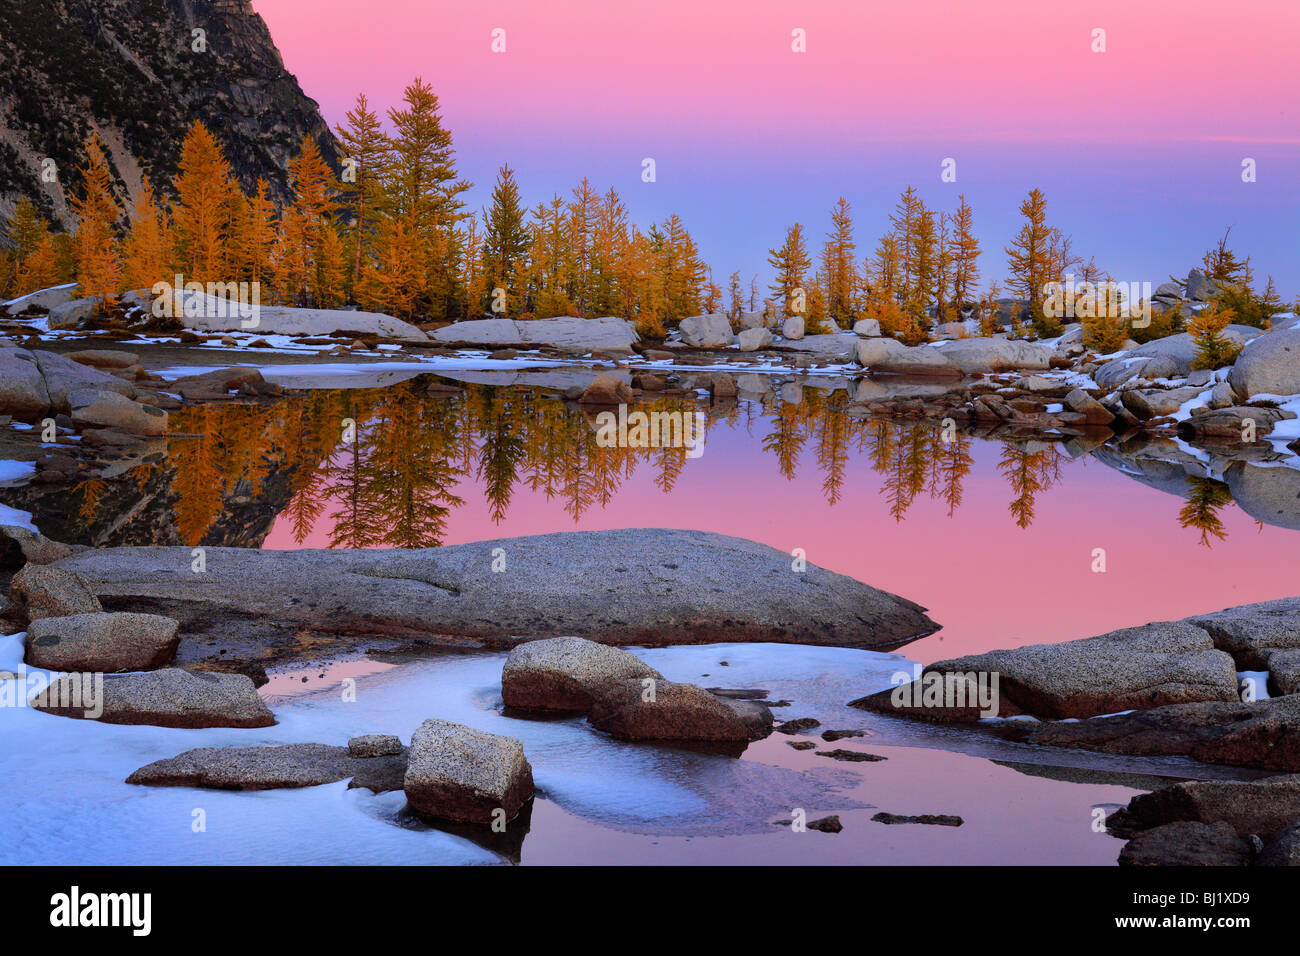 Sonnenaufgang am Gnome Tarn in der Wildnis Verzauberungen Seen Stockbild